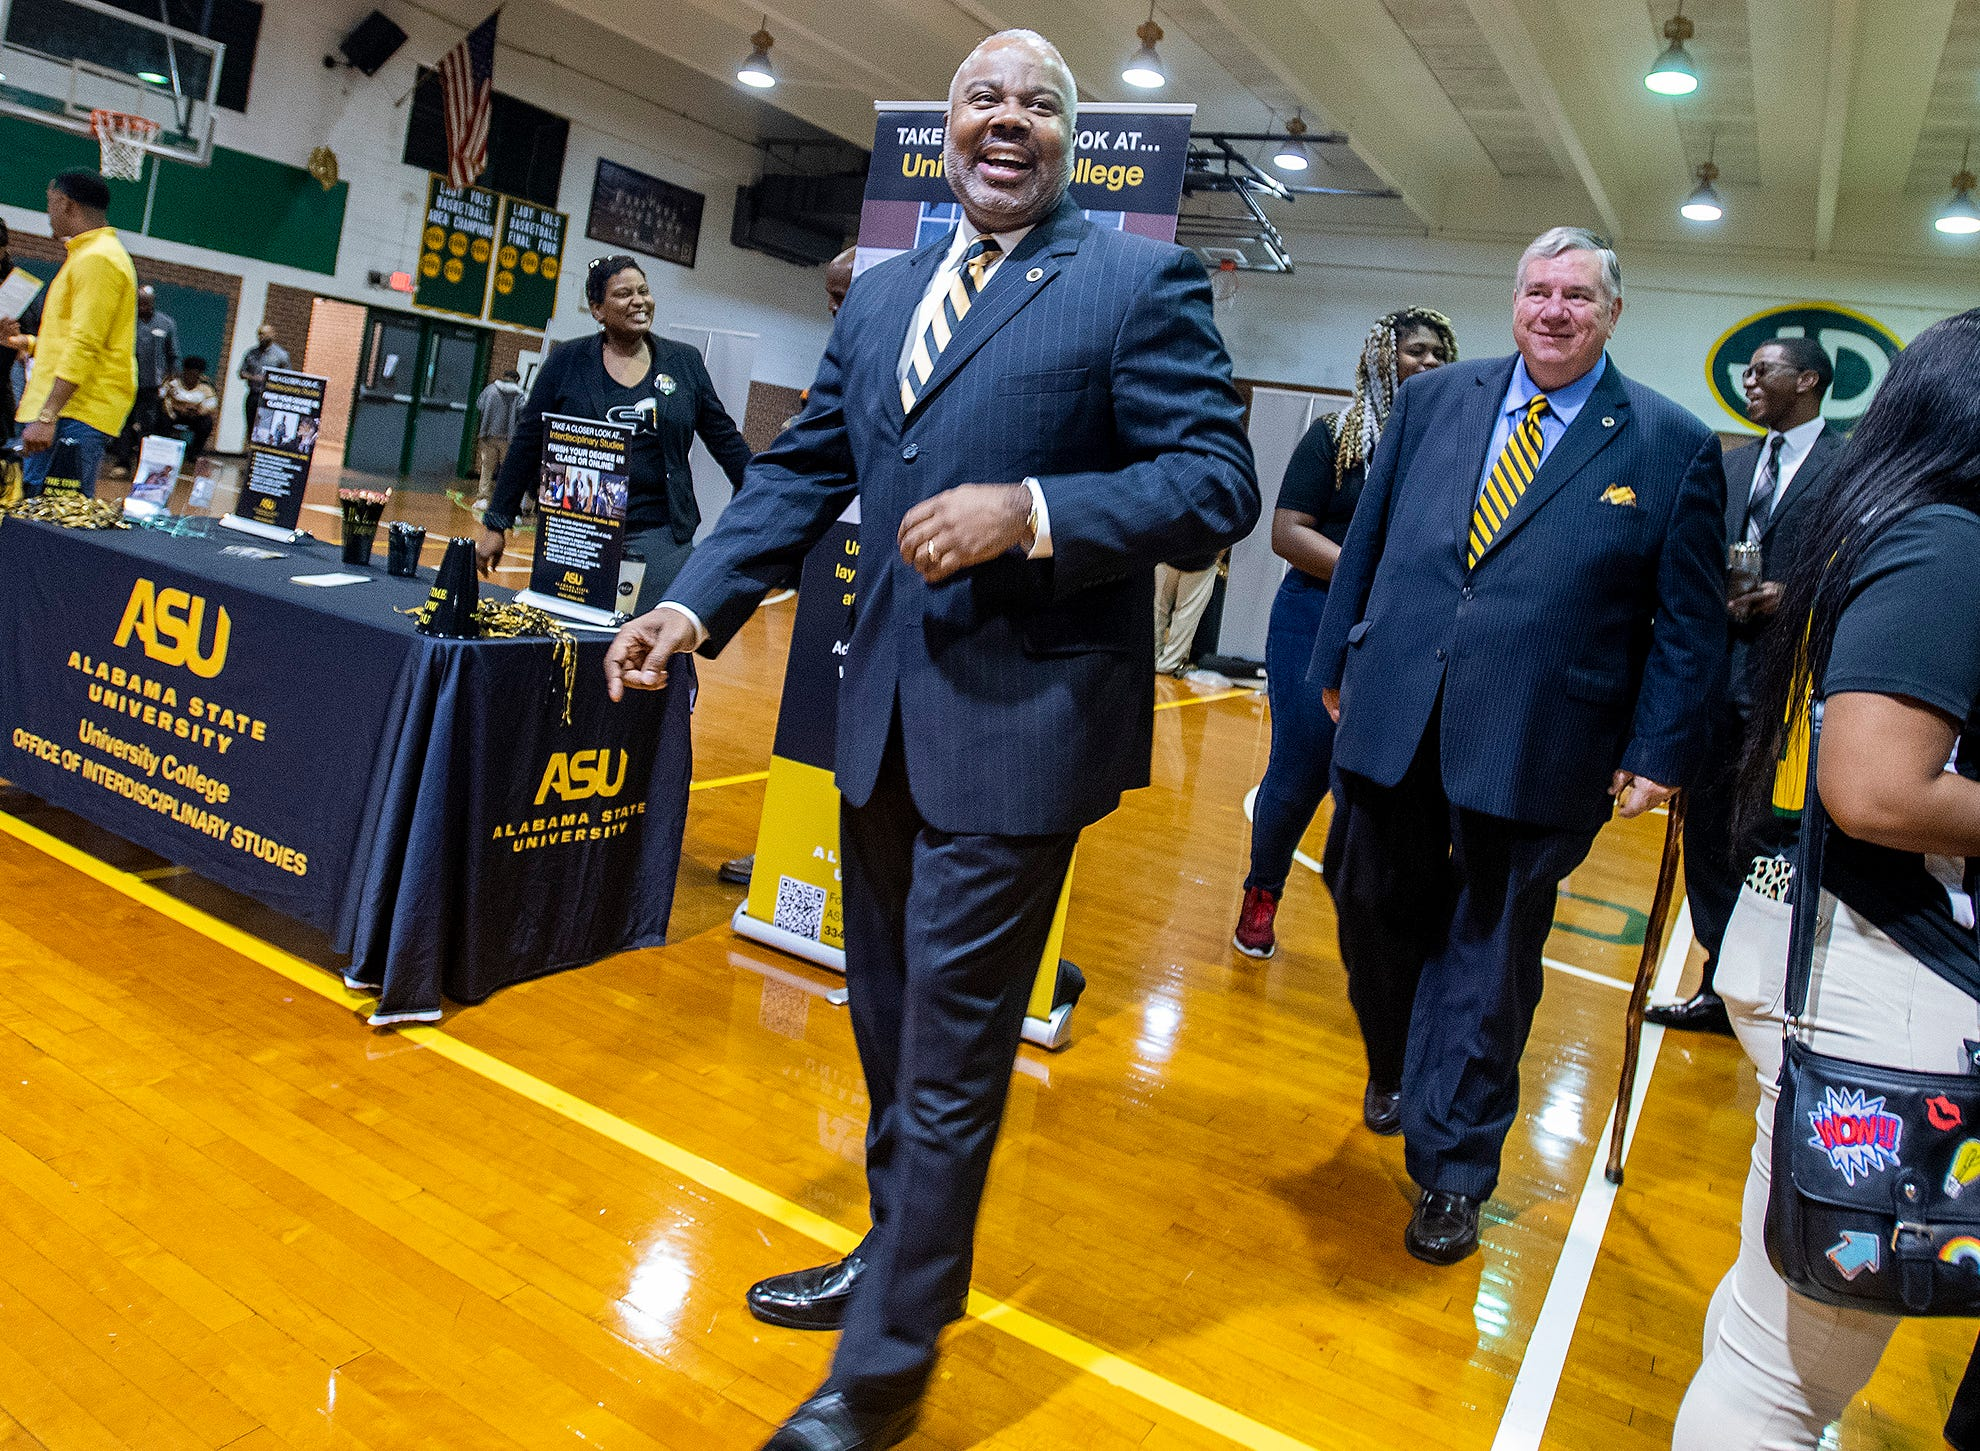 Alabama State University President Quinton Ross visits with Jeff Davis High School students during the ASU President's Tour stop at the school in Montgomery, Ala., on Friday April 12, 2019.